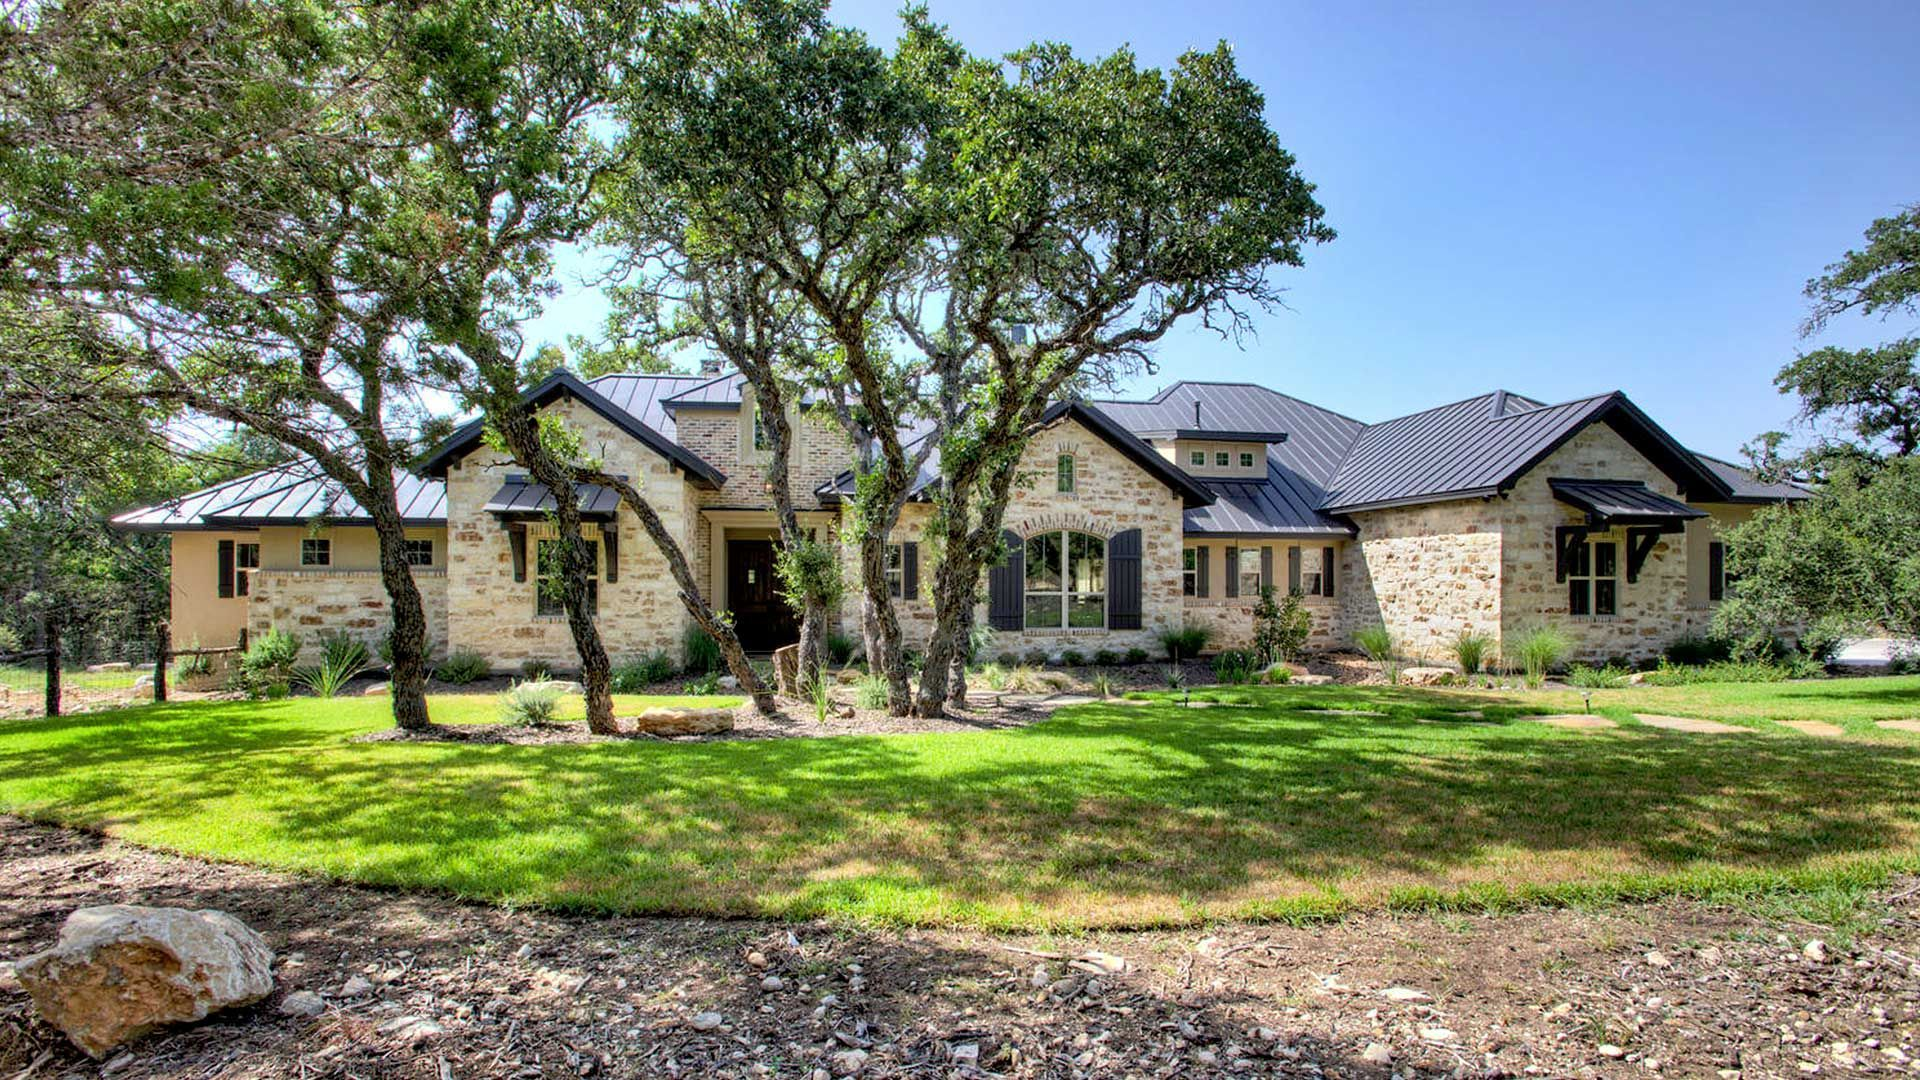 17 Incredible Metal Roofing Detail Ideas Country Home Exteriors Texas Hill Country House Plans Hill Country Homes